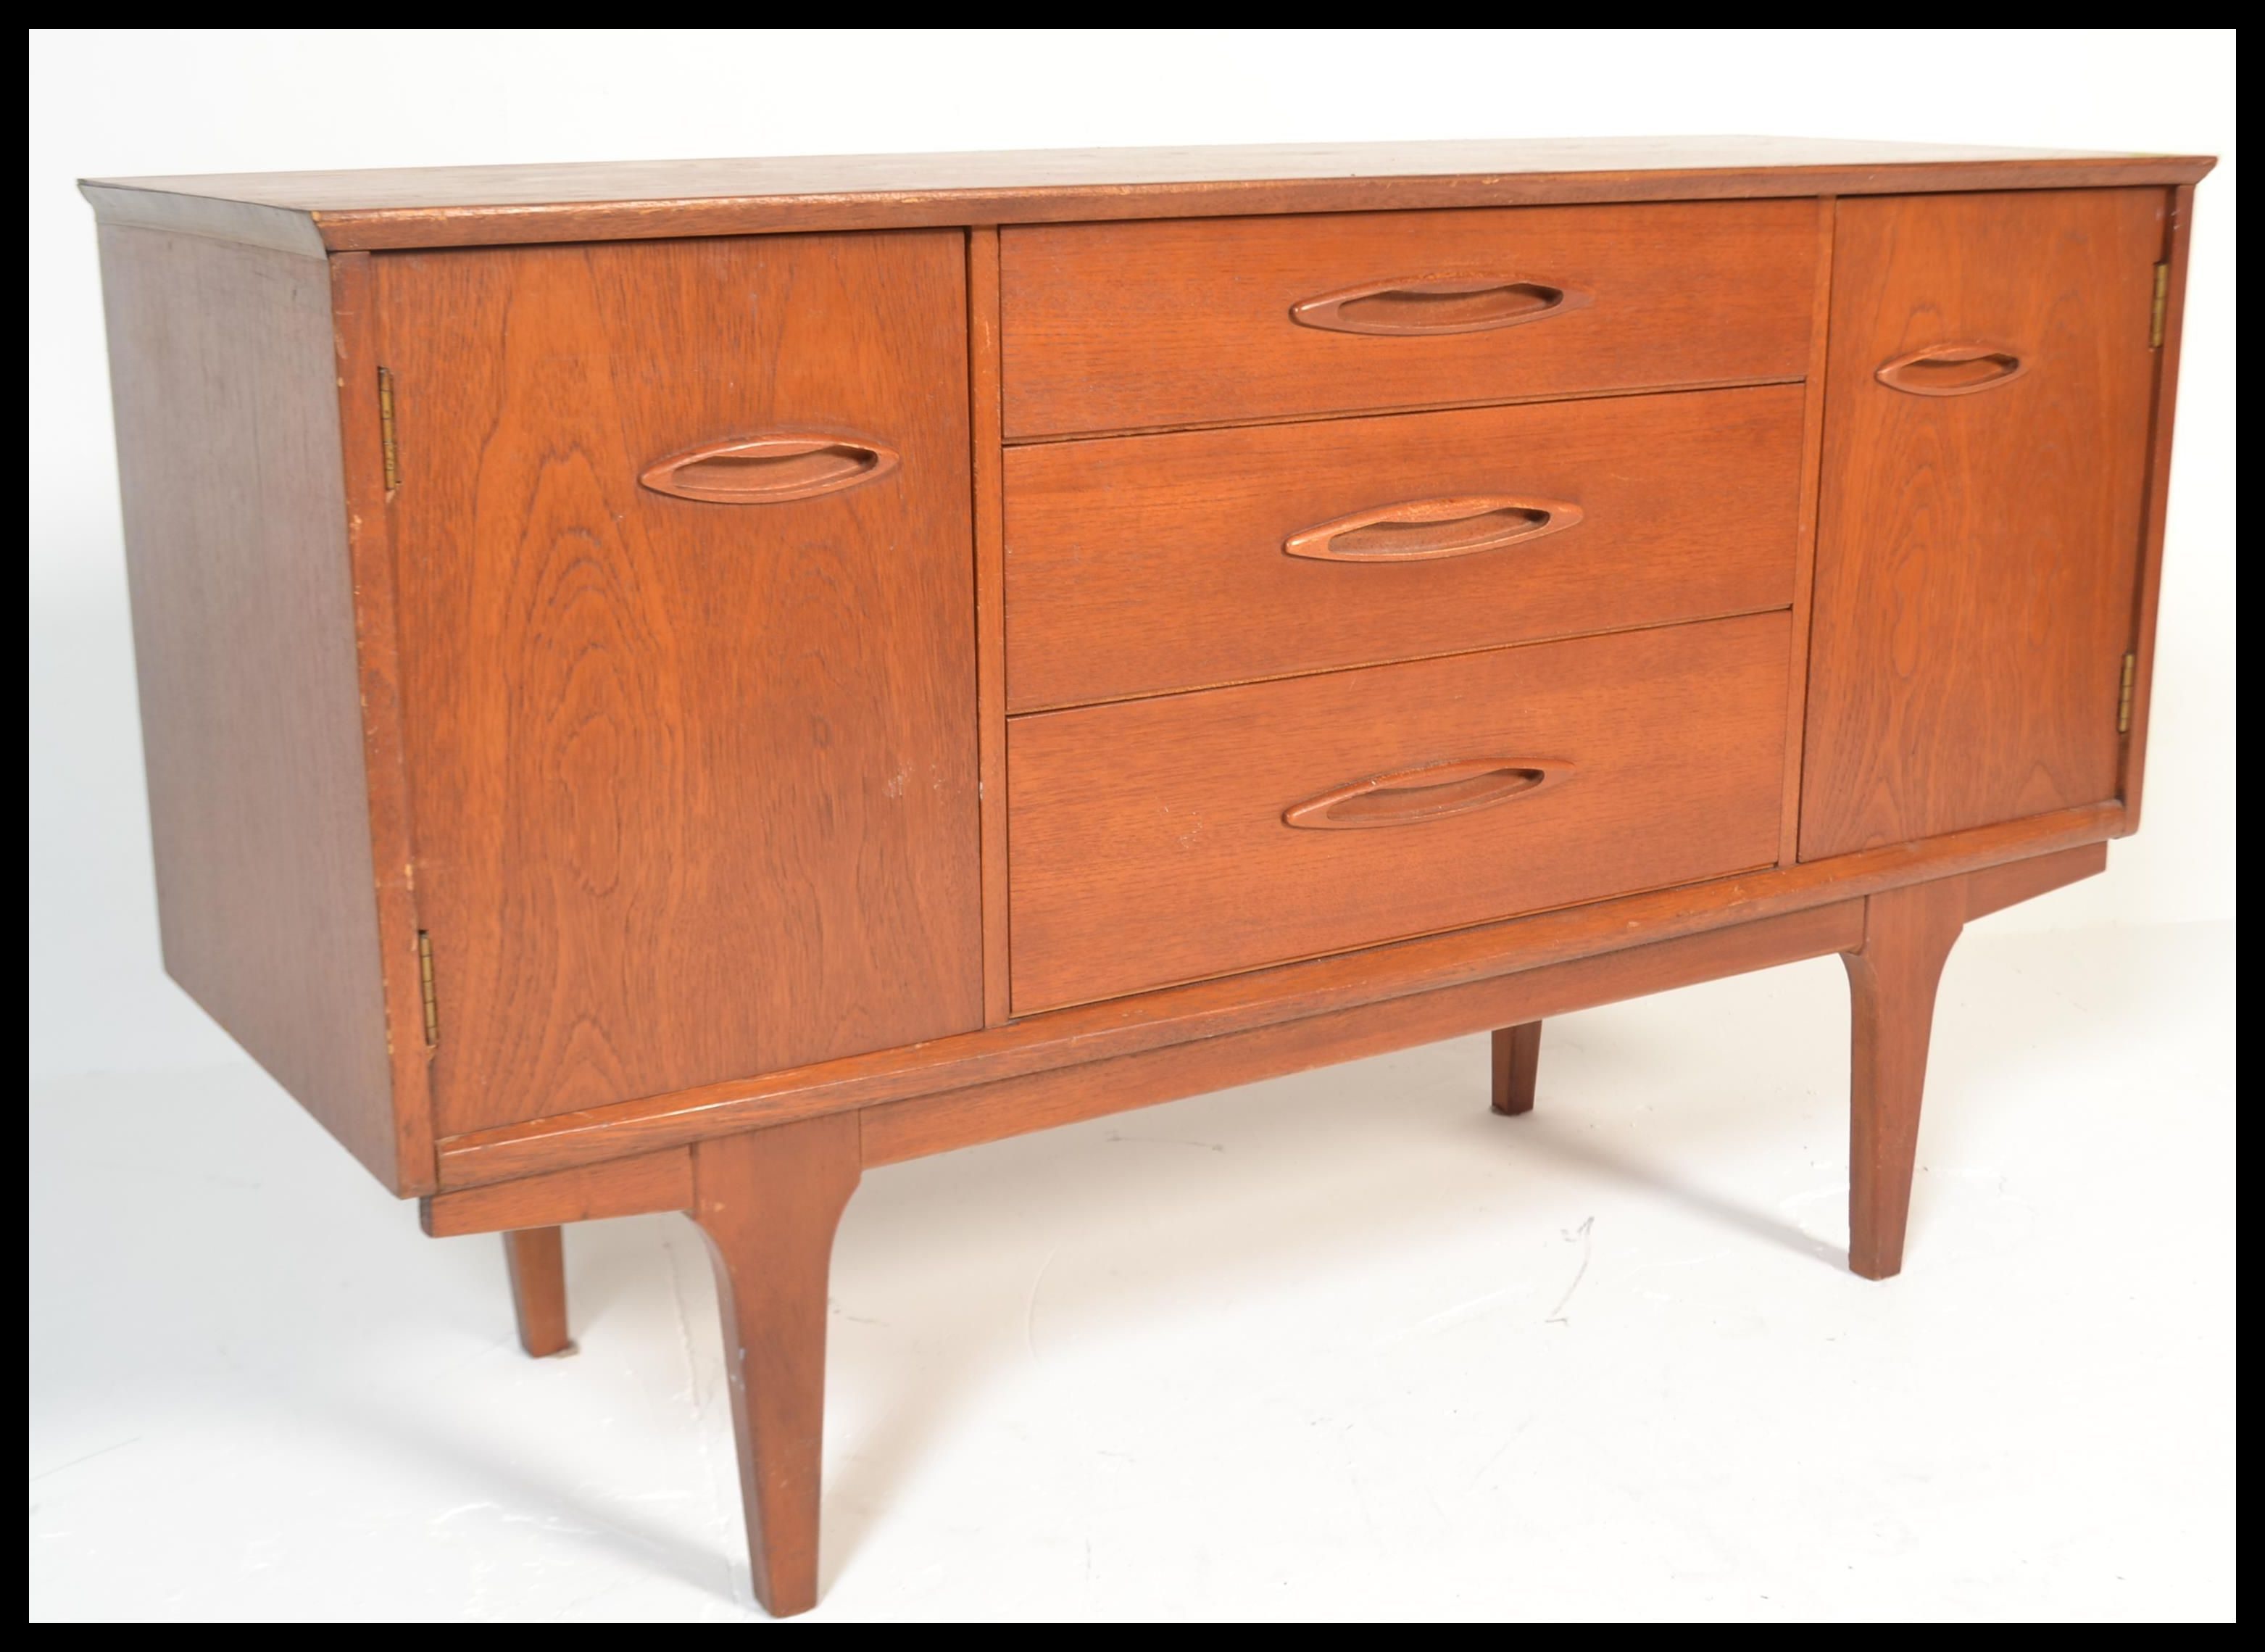 Small Danish Credenza : Dining room low mid century credenza vintage danish sideboard